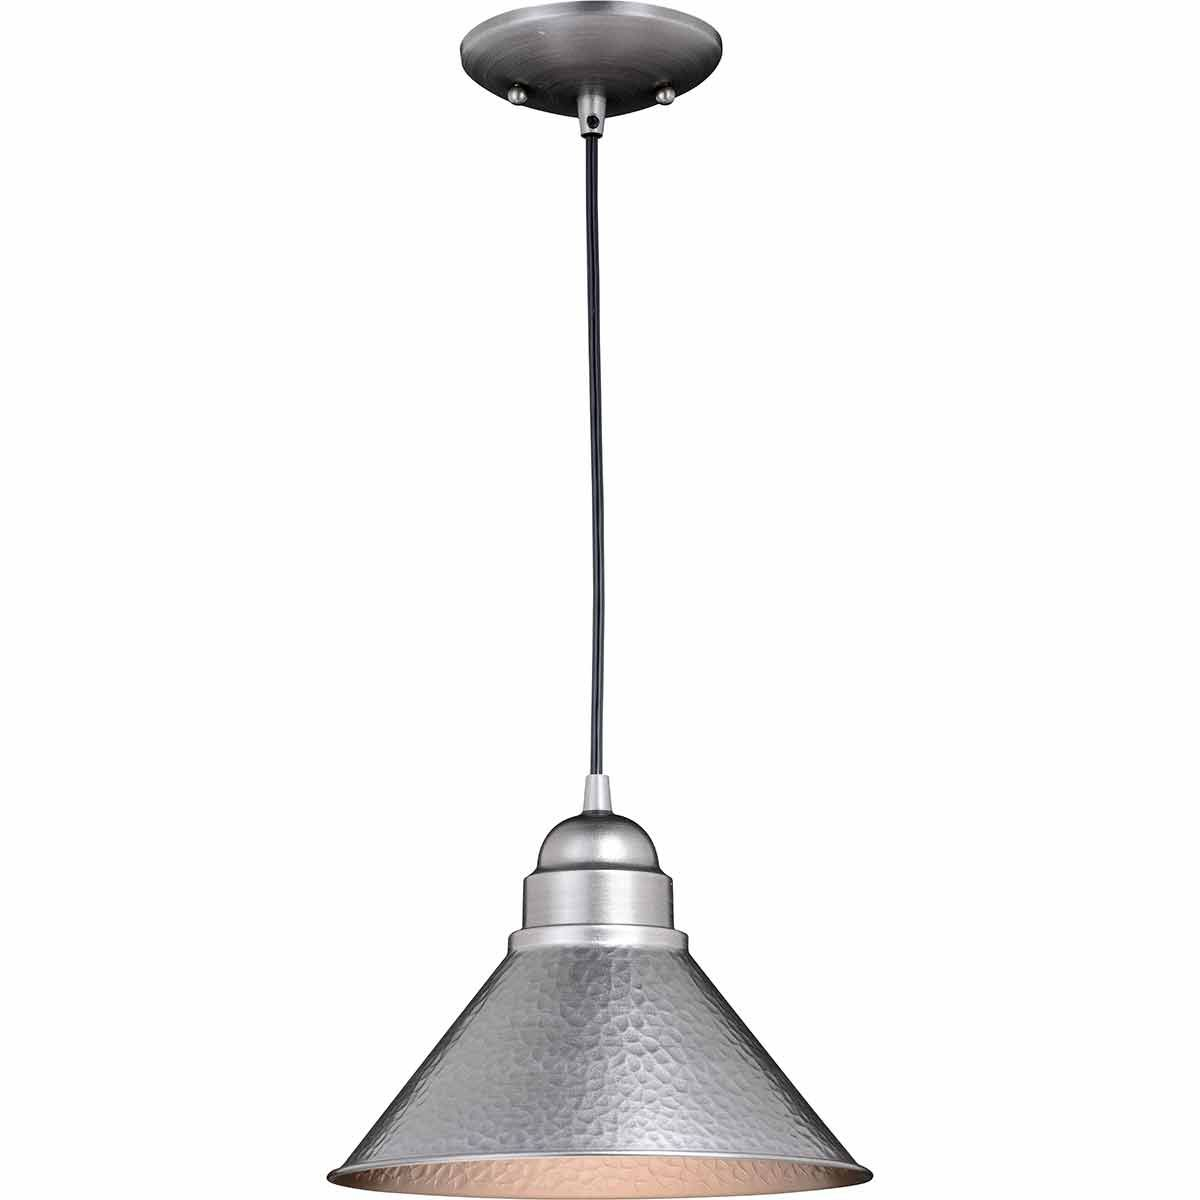 Trailhead Outdoor Pendant Light - Pewter